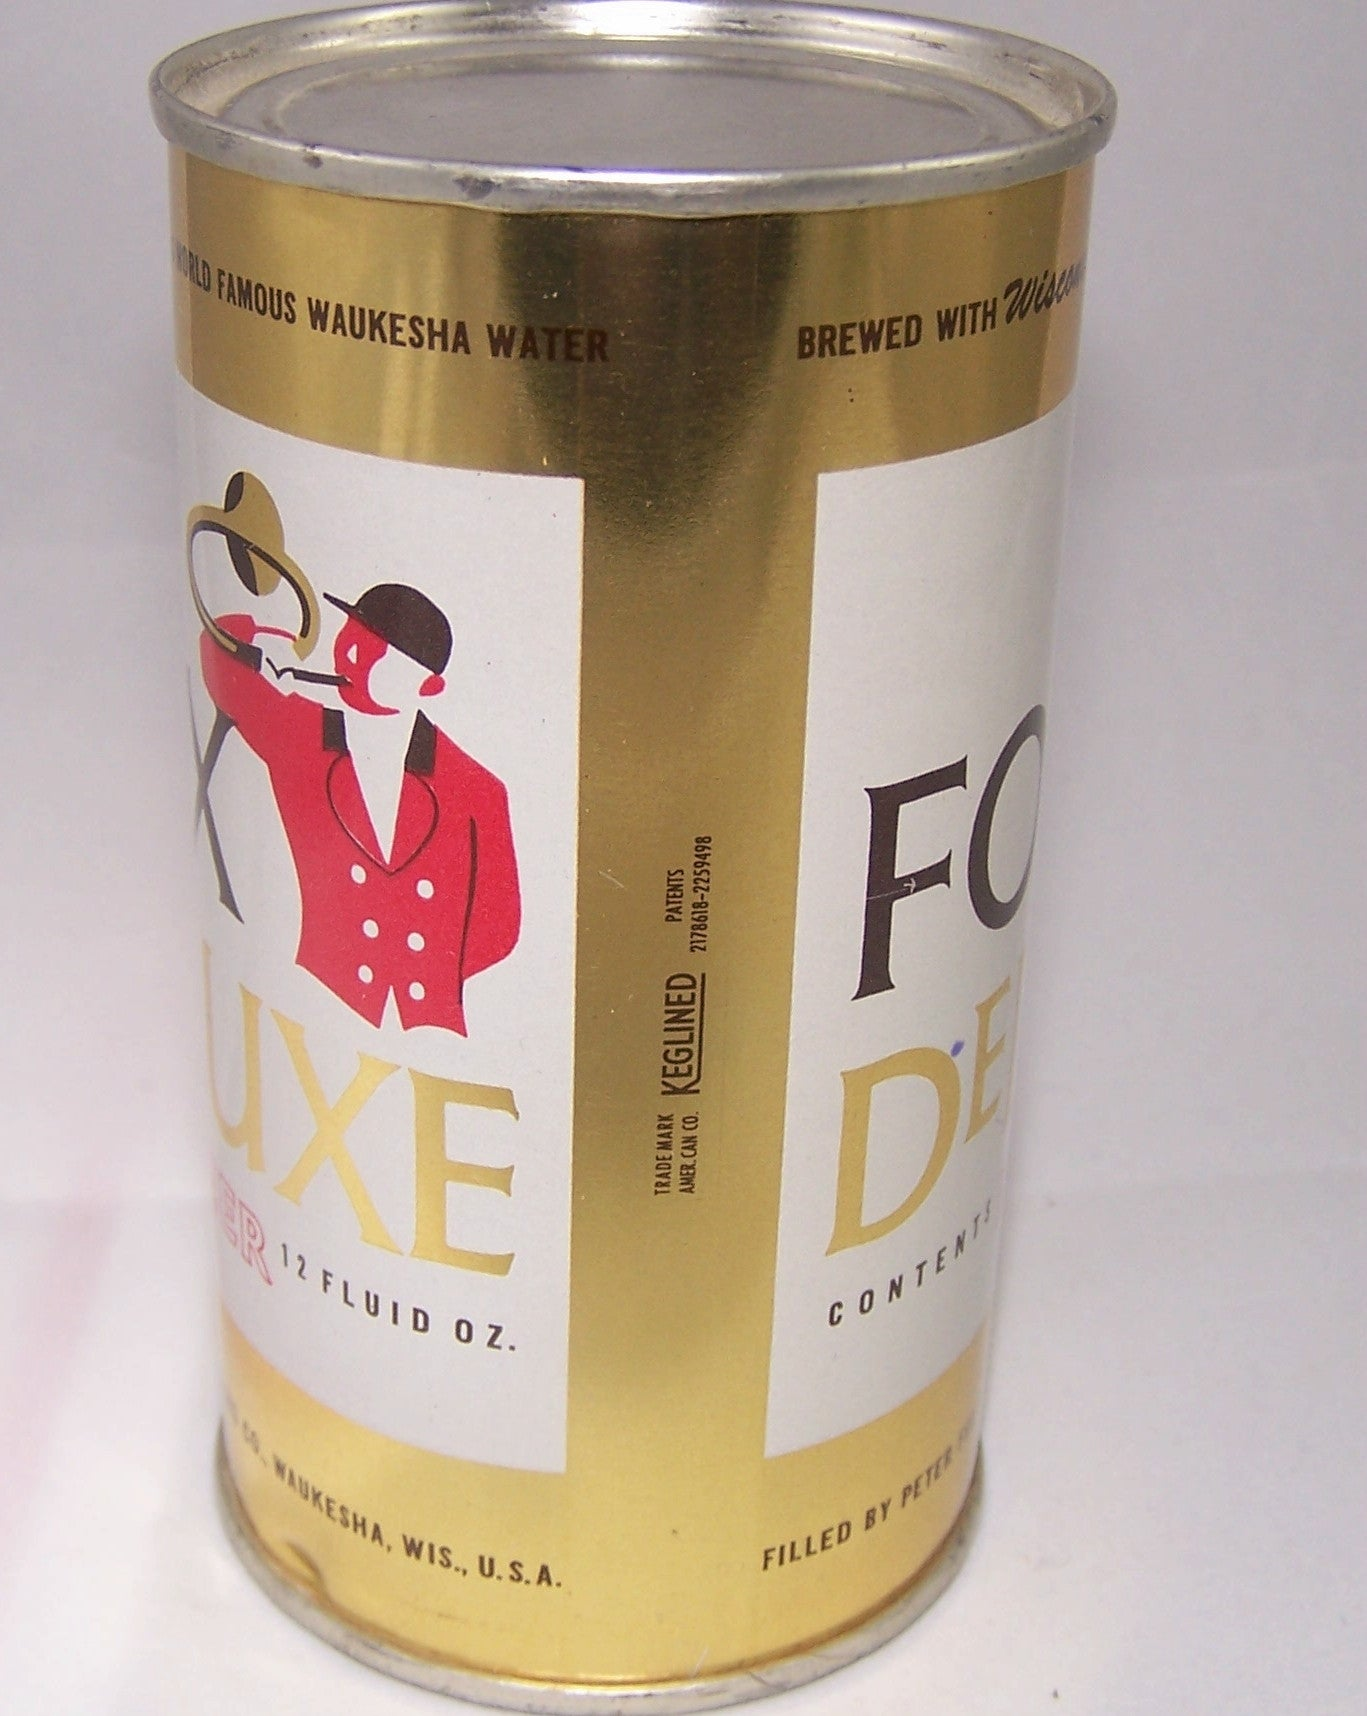 Fox Deluxe Beer, USBC 65-24, Rolled can, Grade A1+ Sold 5/3/15